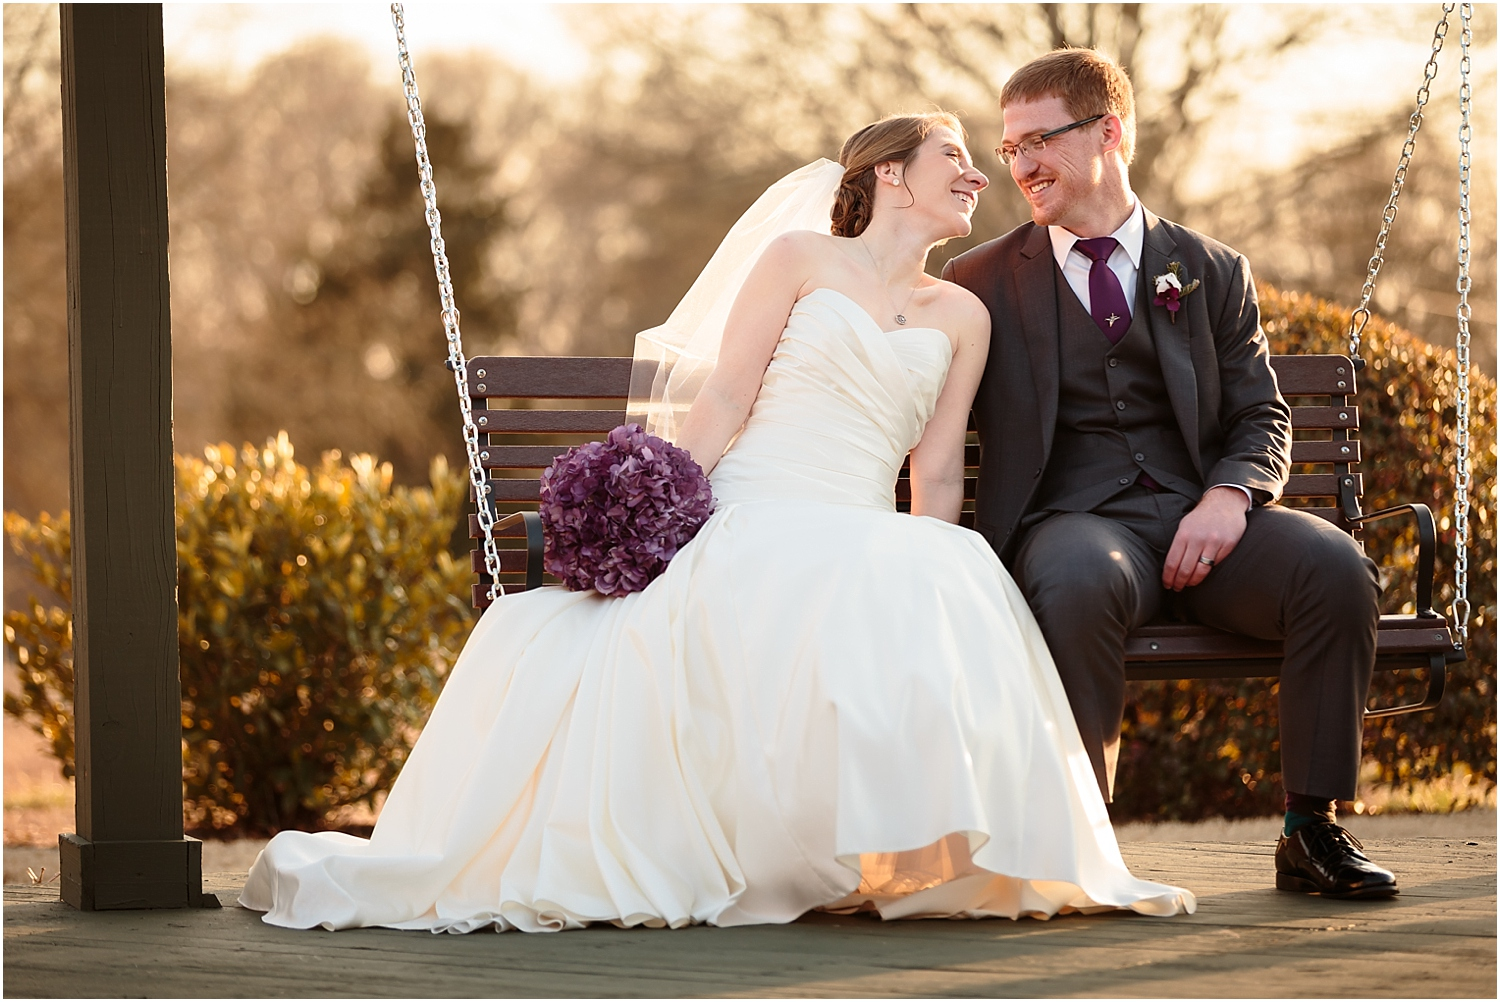 Sunny February Wedding at THE LOOM